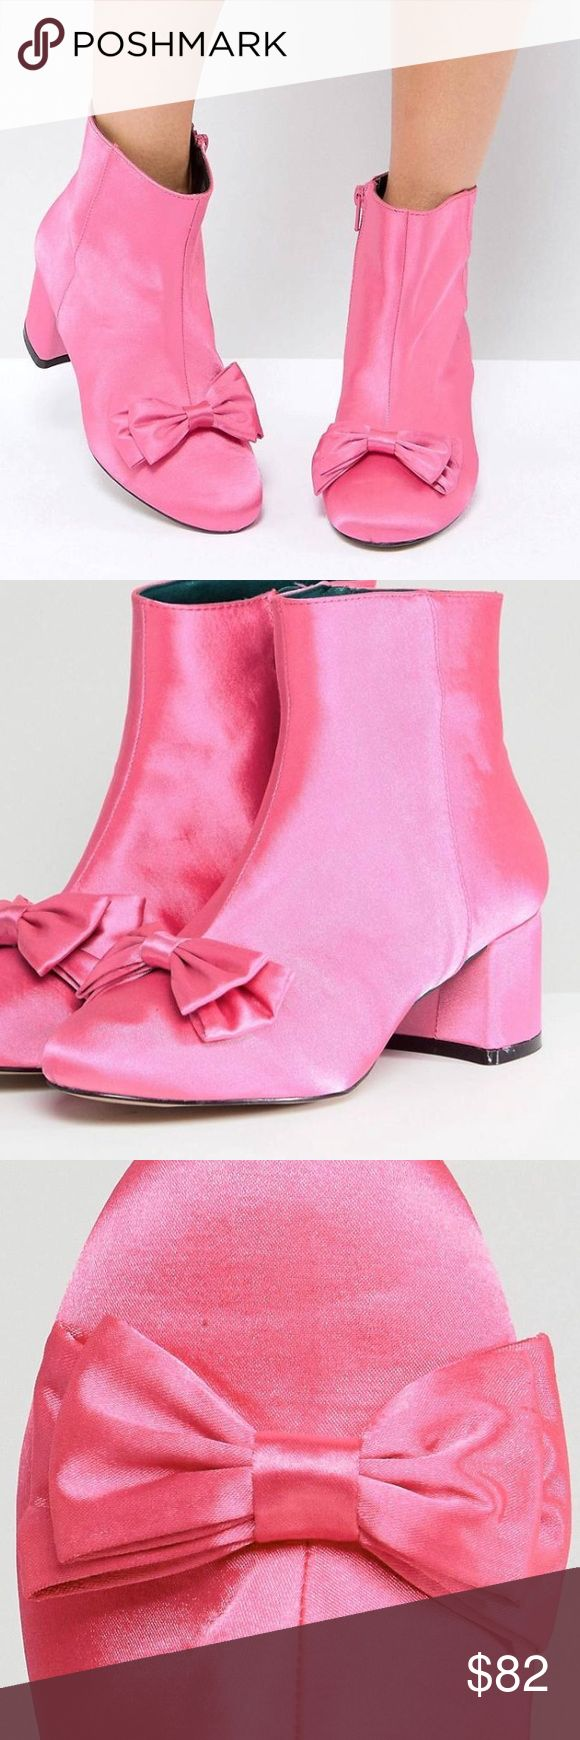 💕River Island Satin Bow Front Heeled Boots Boots by River Island Smooth satin upper Zip closure Bow detail Round toe Block heel River Island Shoes Ankle Boots & Booties